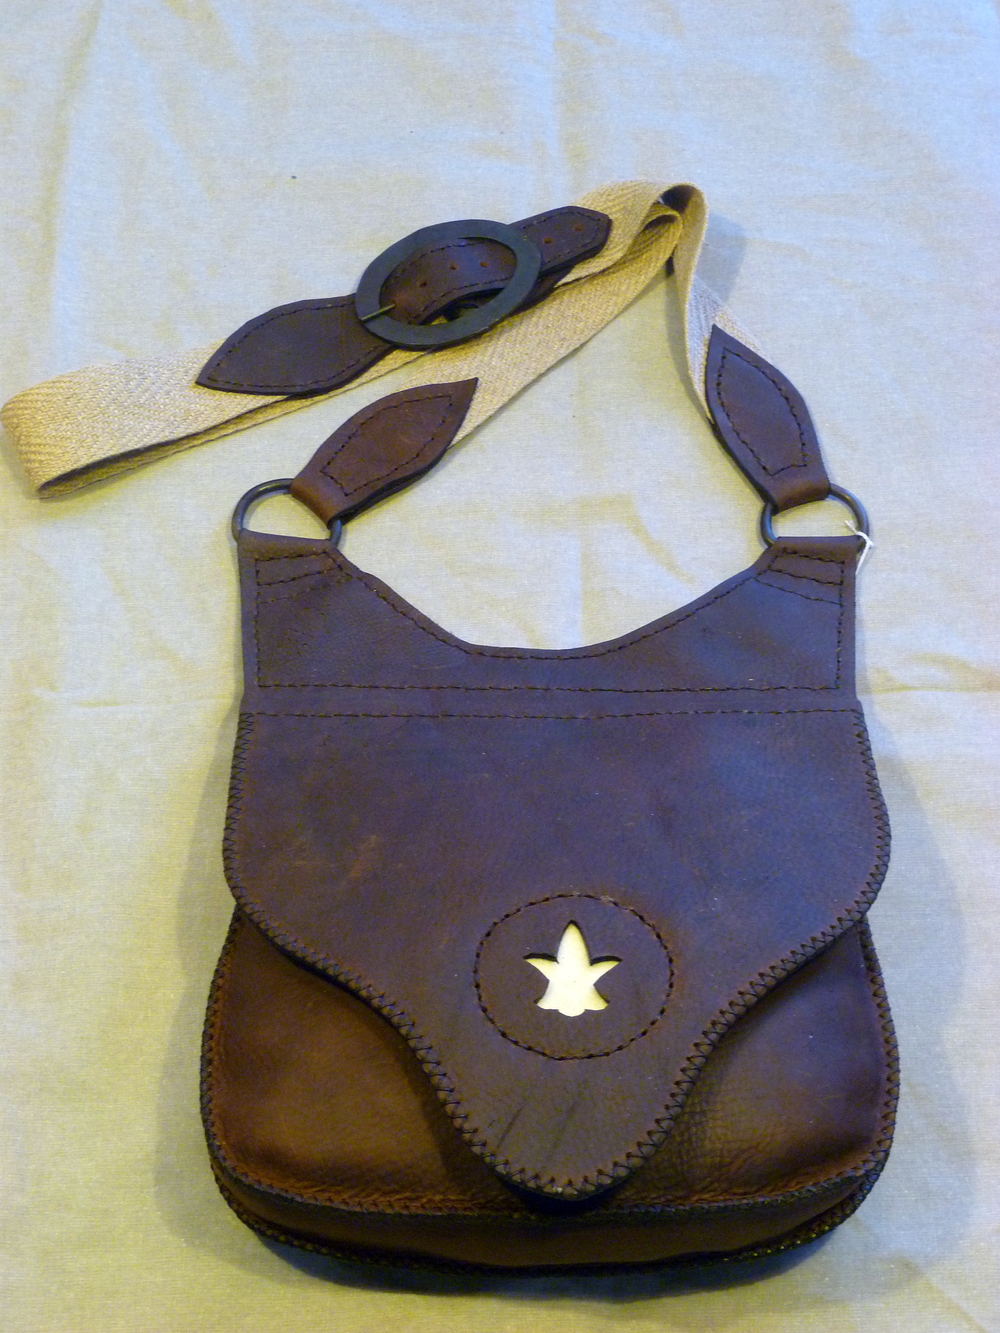 "Large Haversack Shooting Bag with Beavertail flap and design:  Four inside pockets and a knife sheath  Size: 12"" x 12"" x 3""  Price: $125.00  Inventory Tag: GB-4-DBSF"